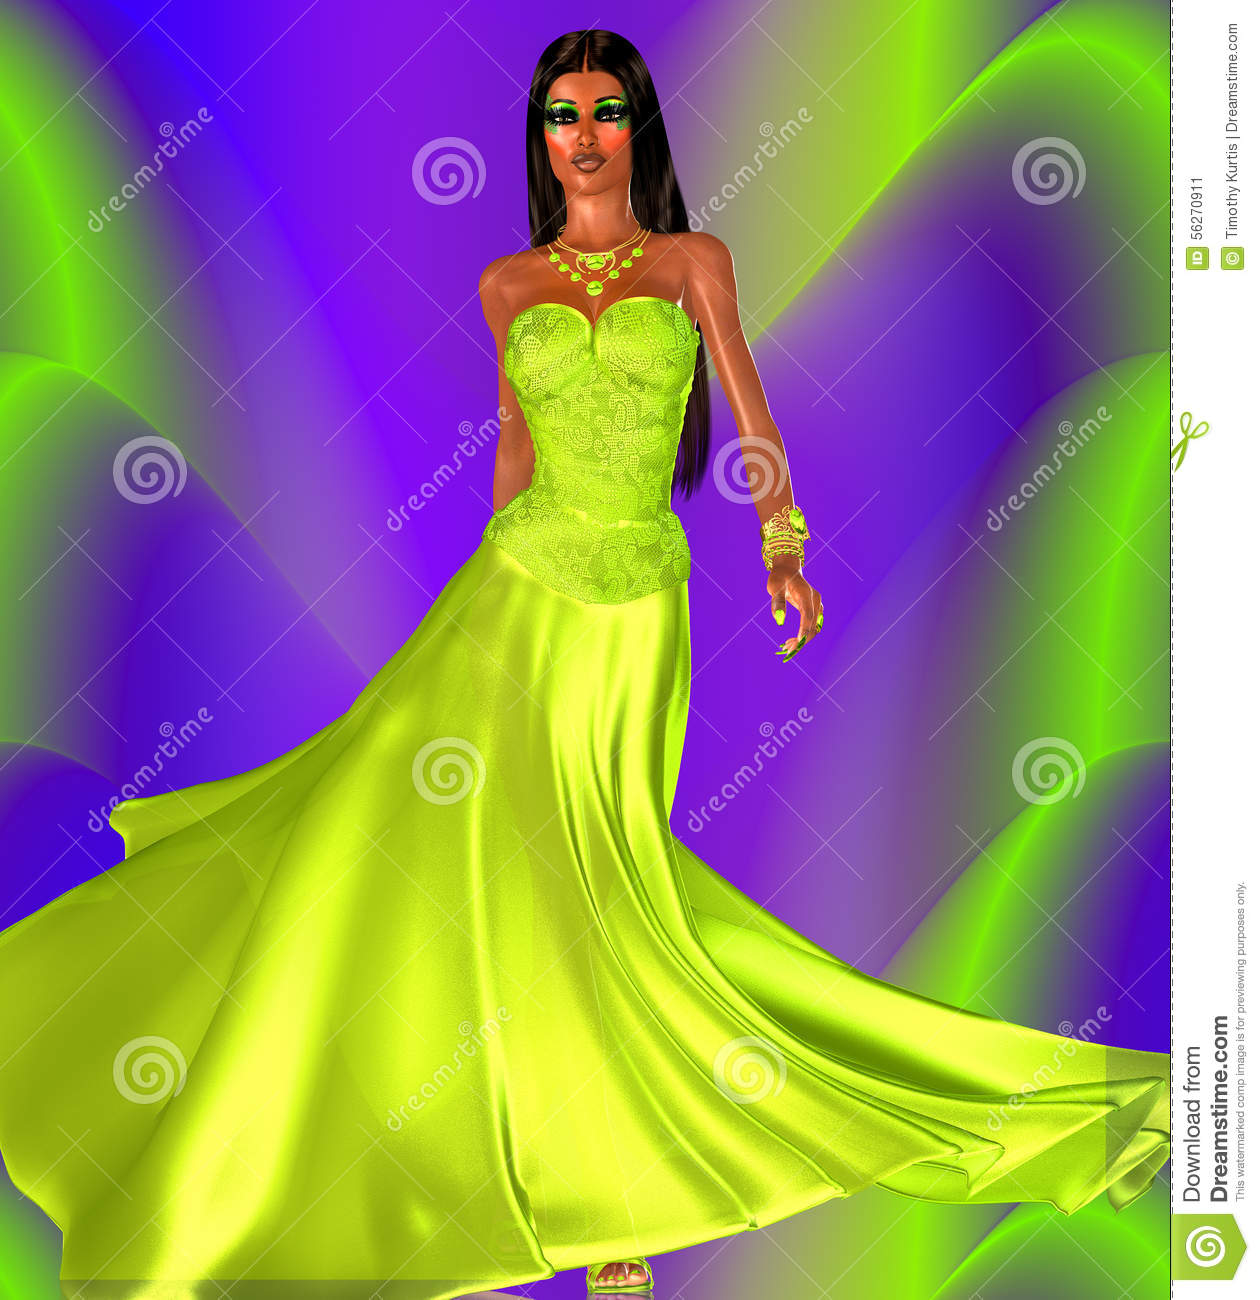 Green Evening Gown And A Colorful Background Perfect For Beauty And